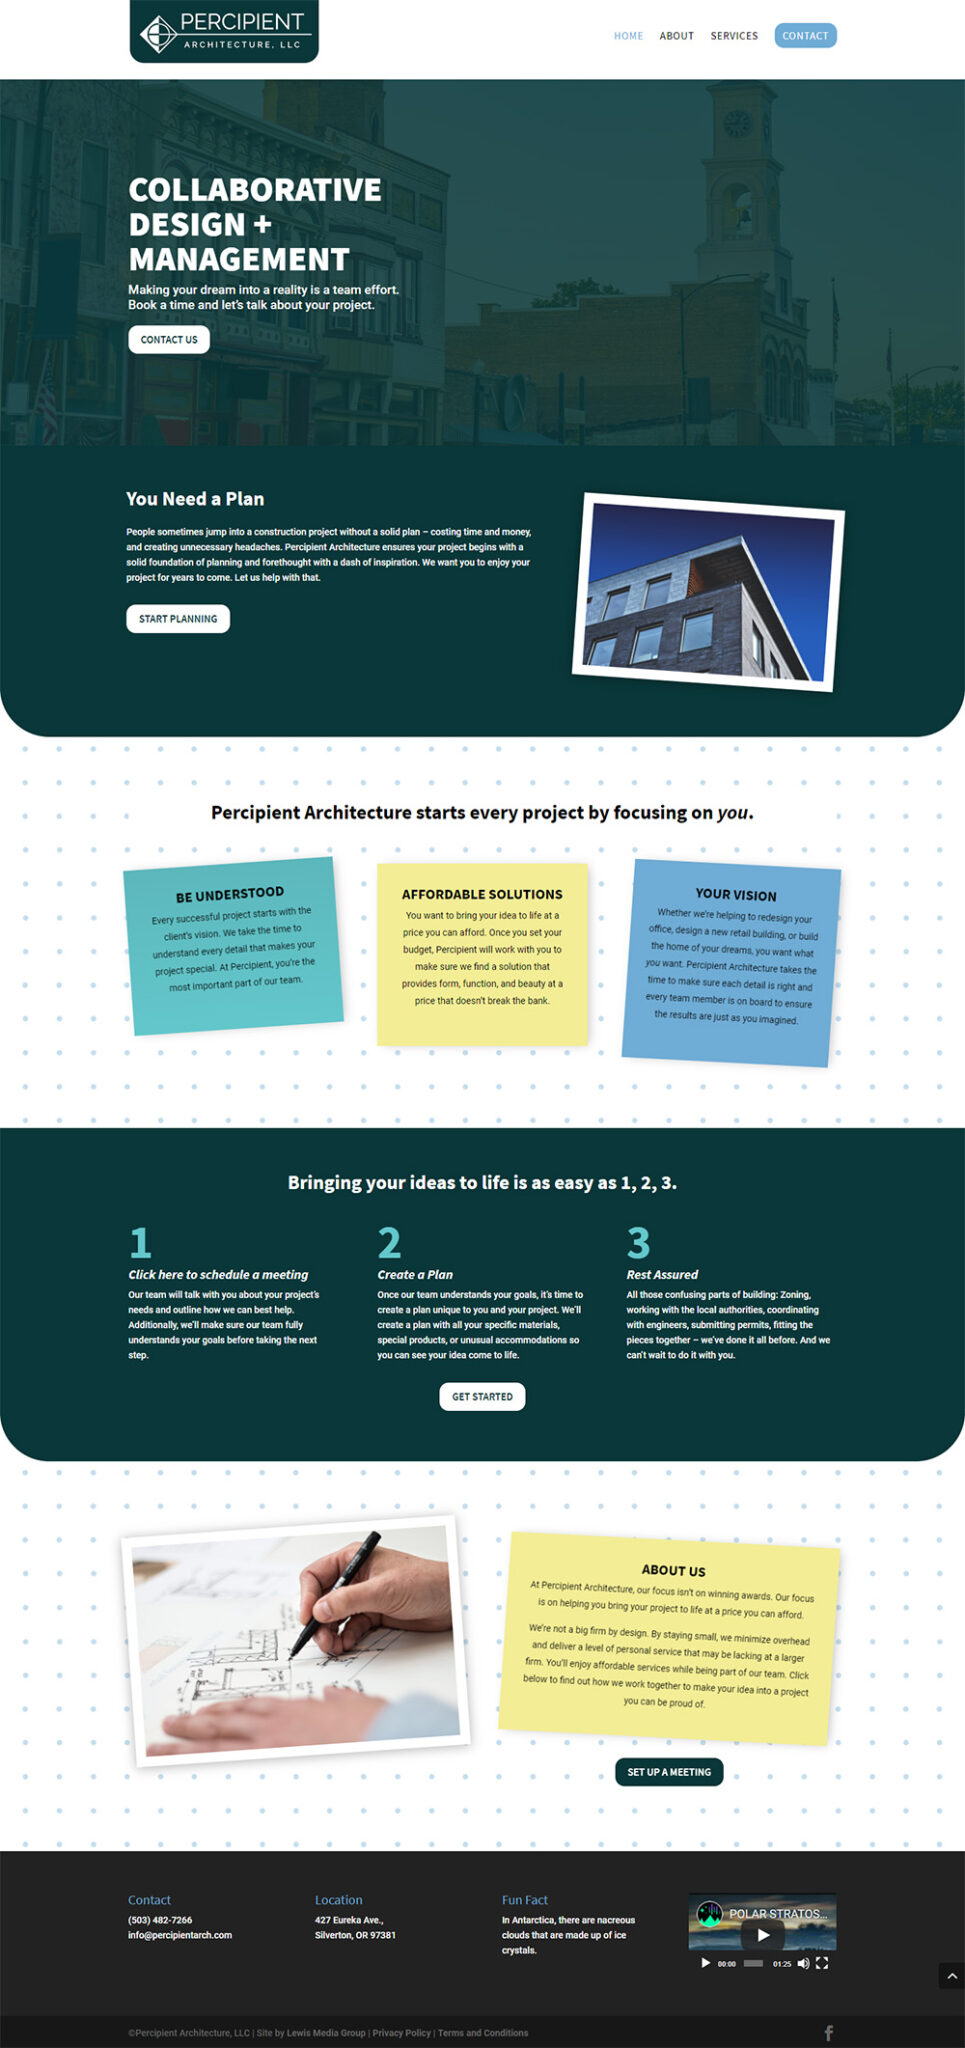 Percipient Architecture Home page after redesign